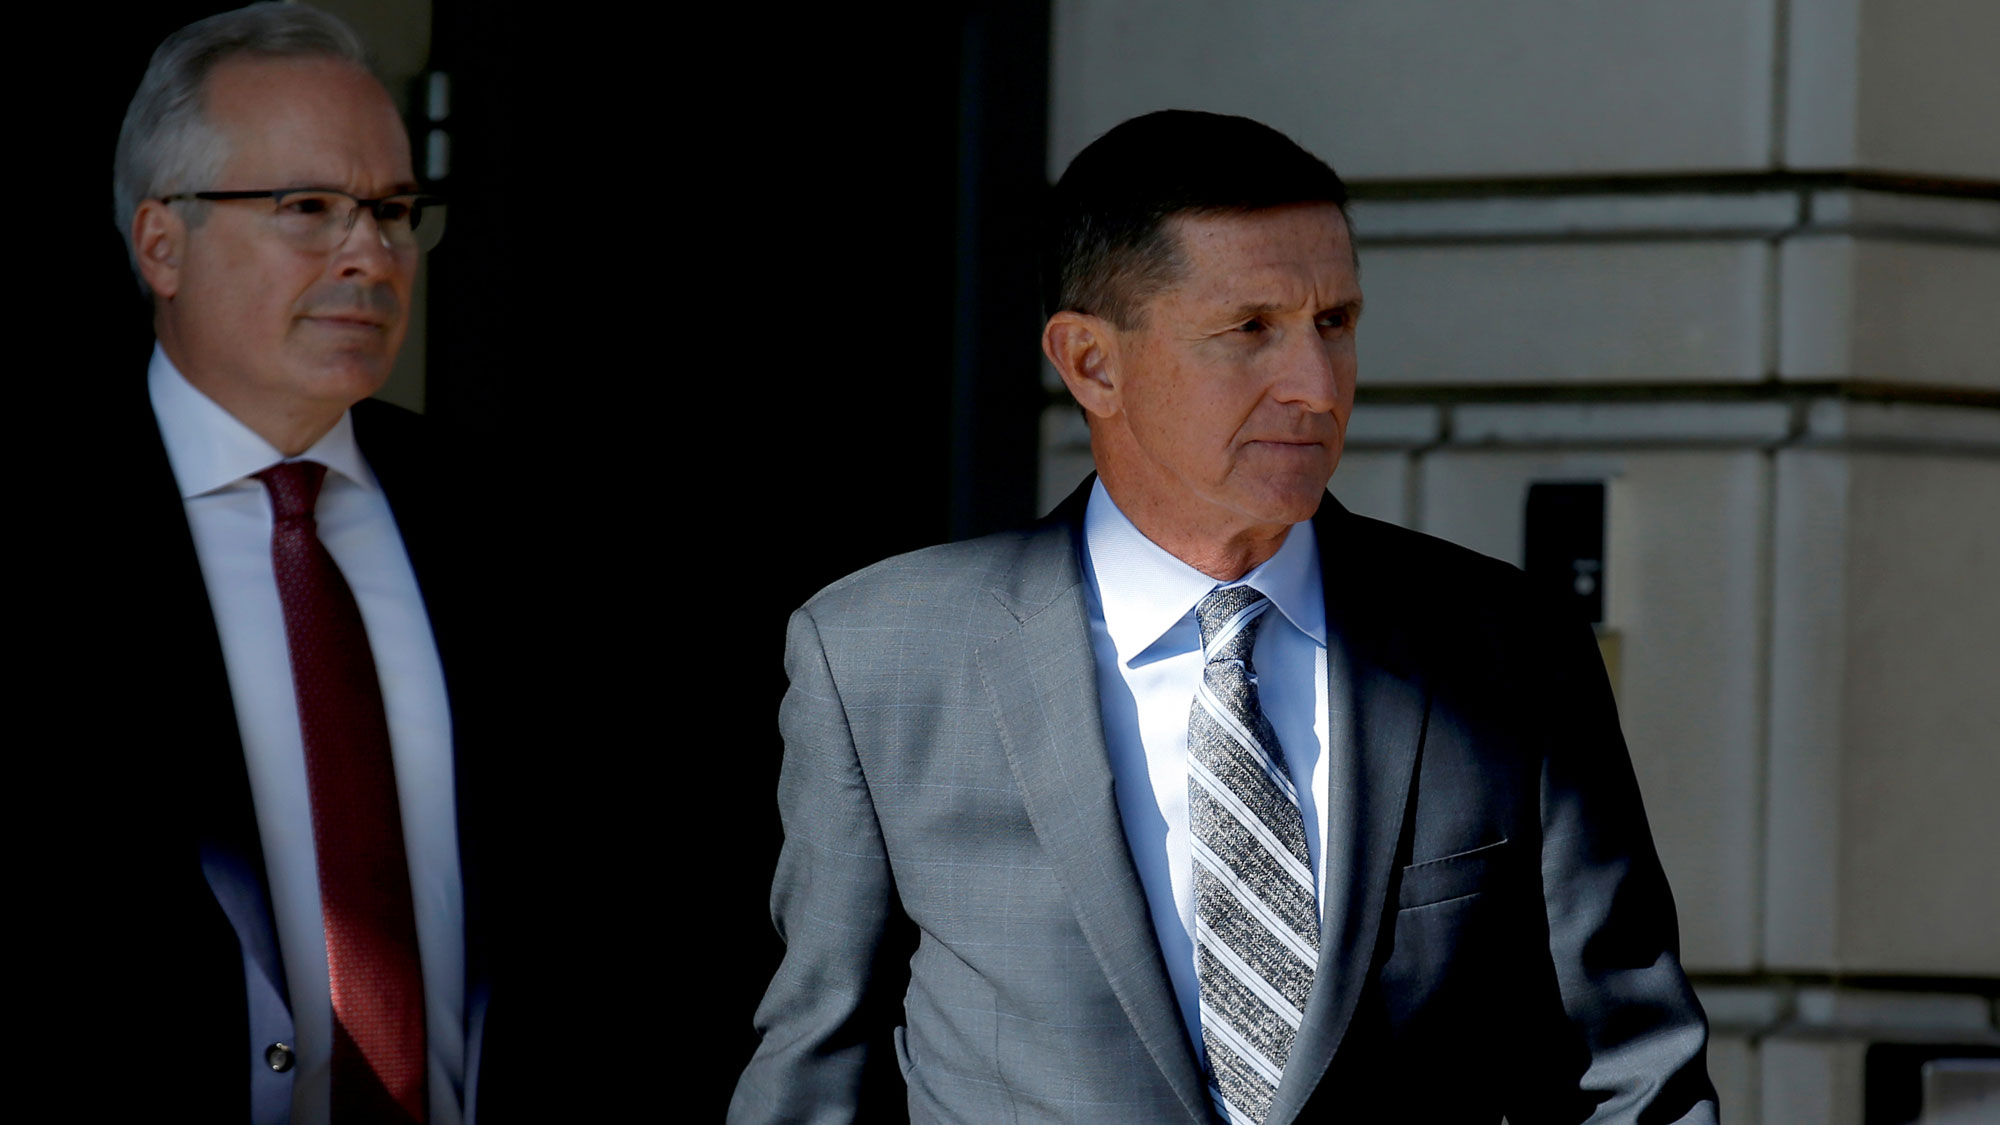 Former US National Security Adviser Michael Flynn is shown departing US District Court wearing a grey suit and striped tie.